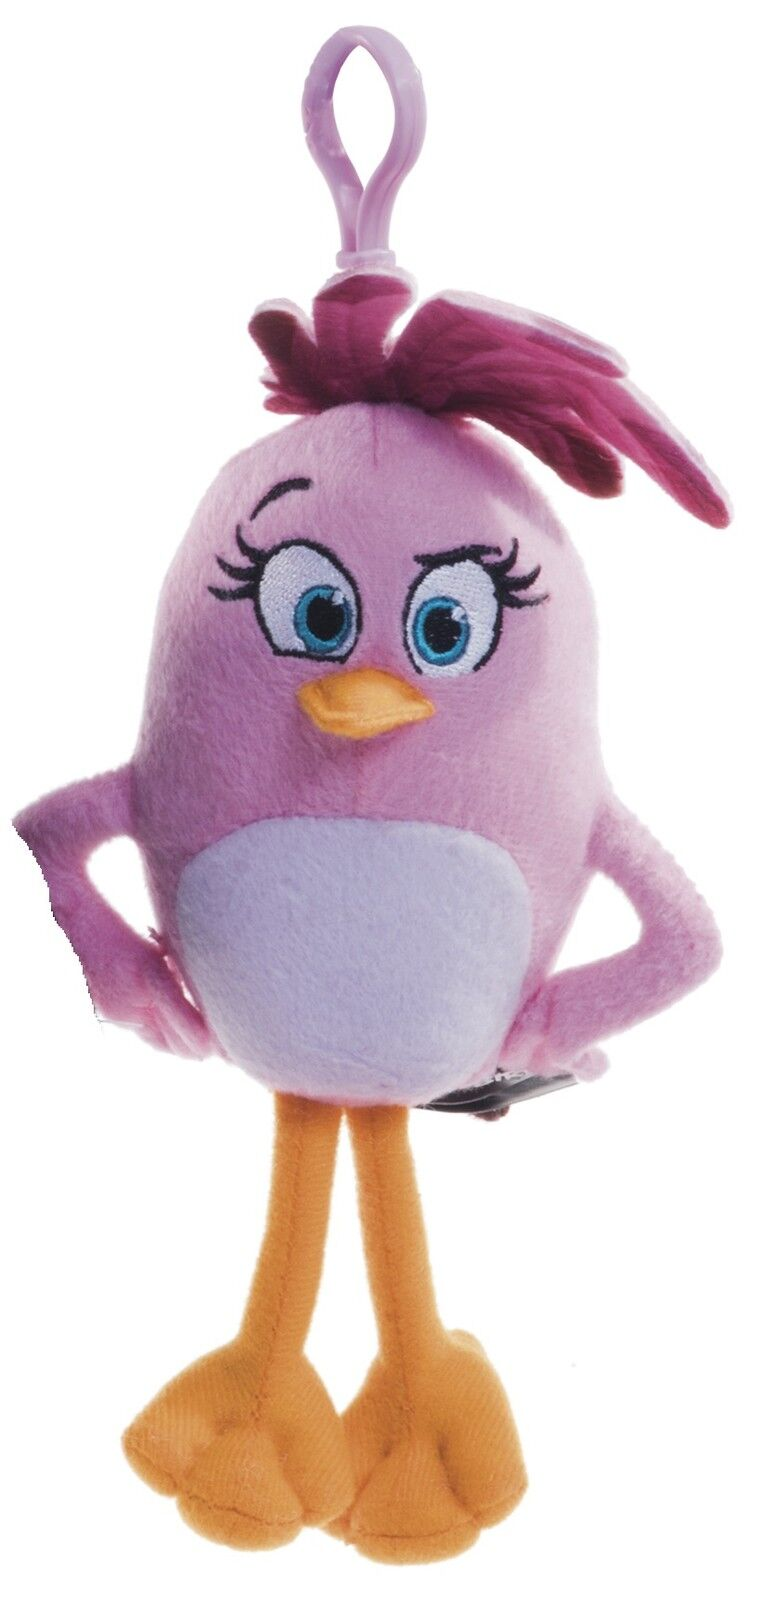 All Angry Birds Plush Toys : New official quot angry birds the movie plush soft toy